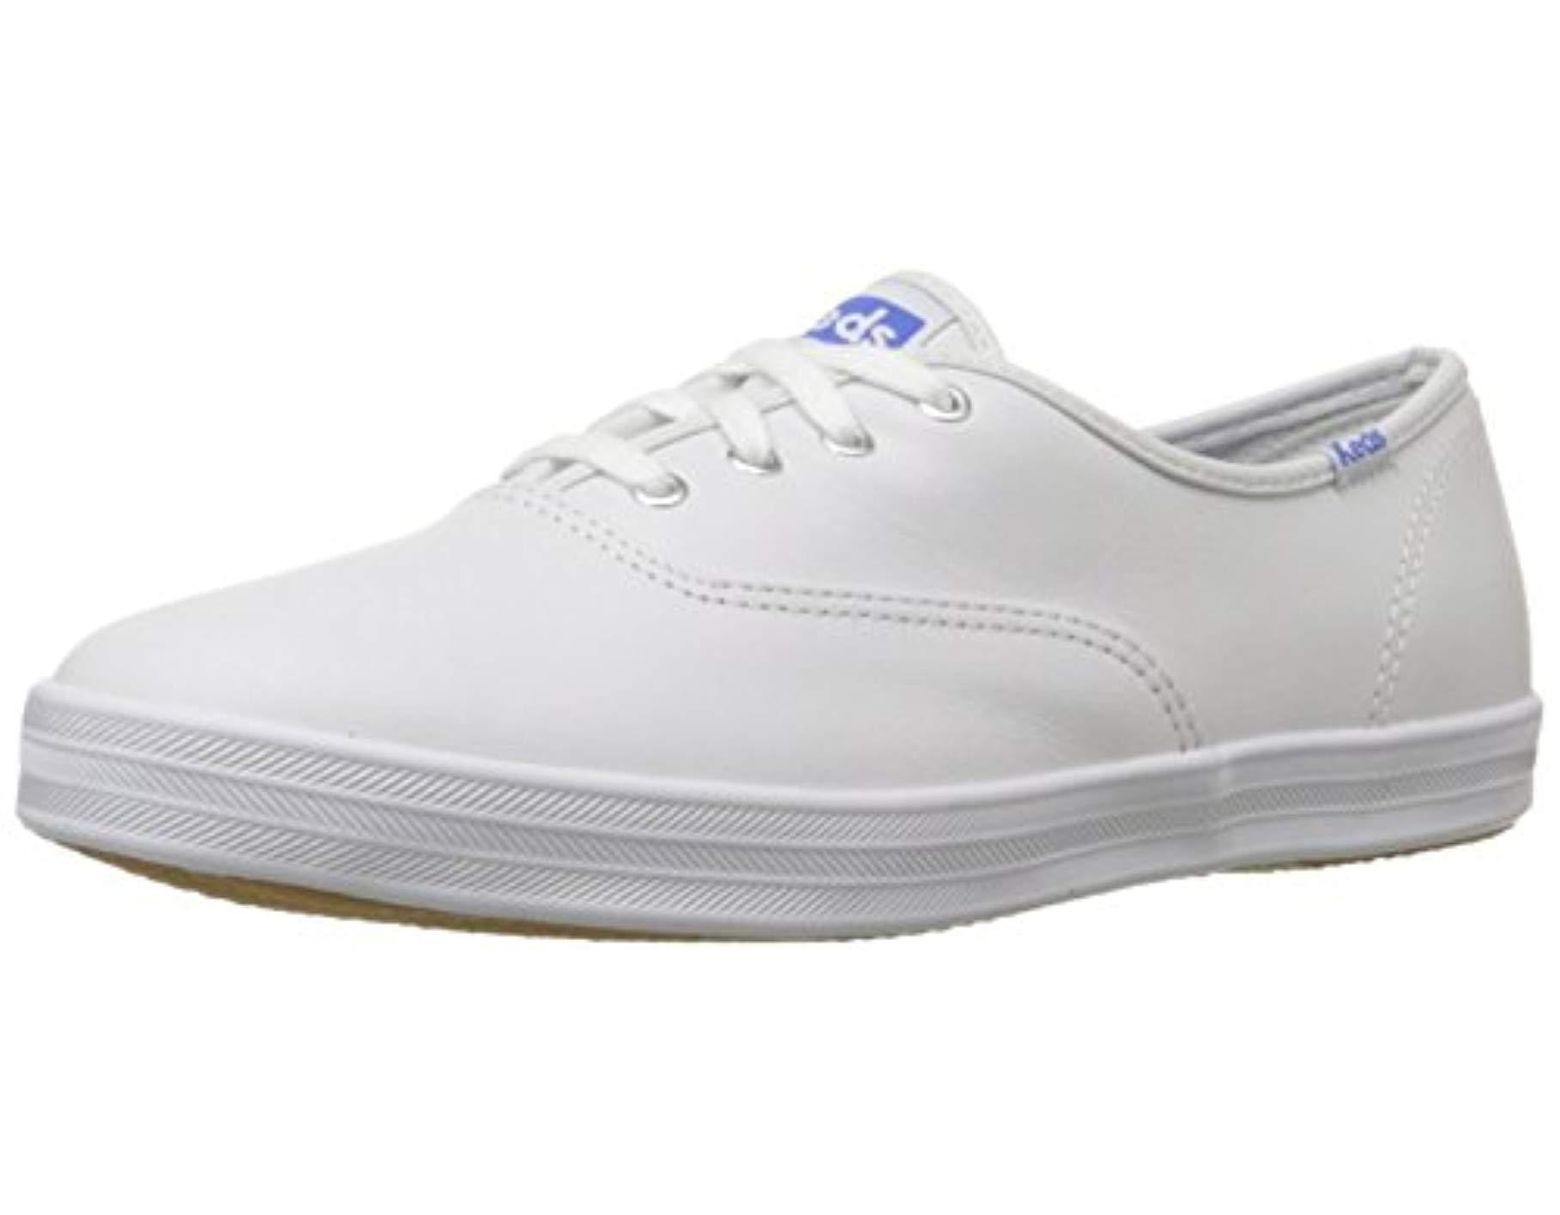 aa5afba363b20 Women's Champion Original Leather Lace-up Sneaker, White Leather, 13 S Us